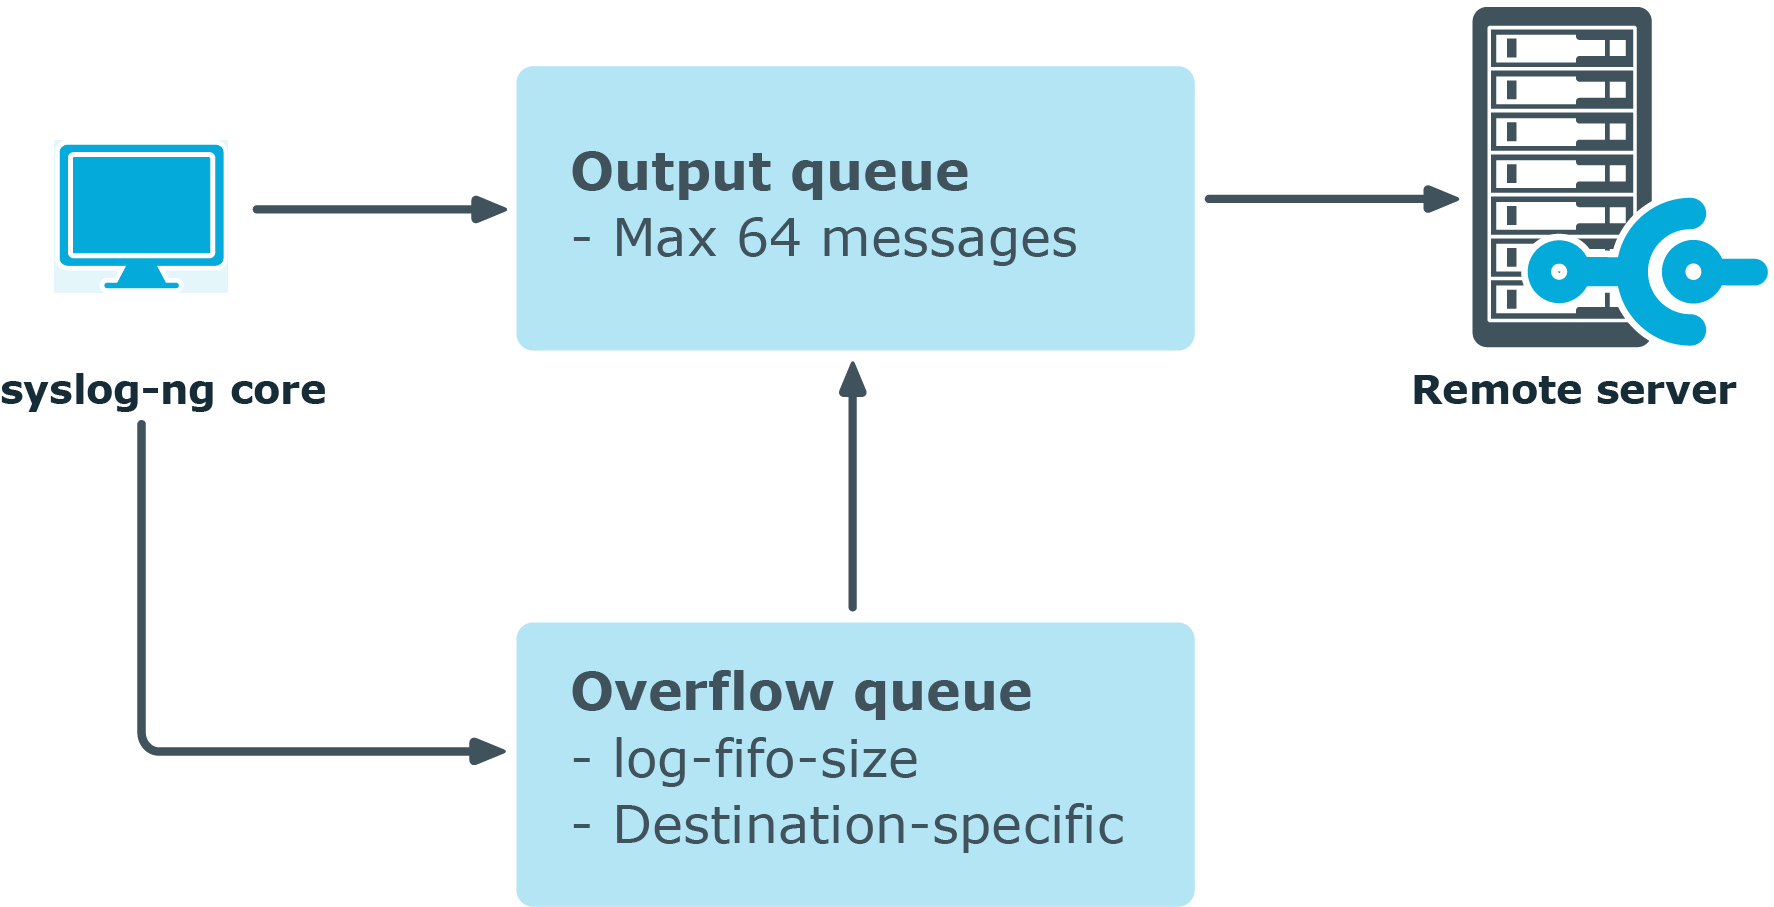 Handling outgoing messages in syslog-ng PE